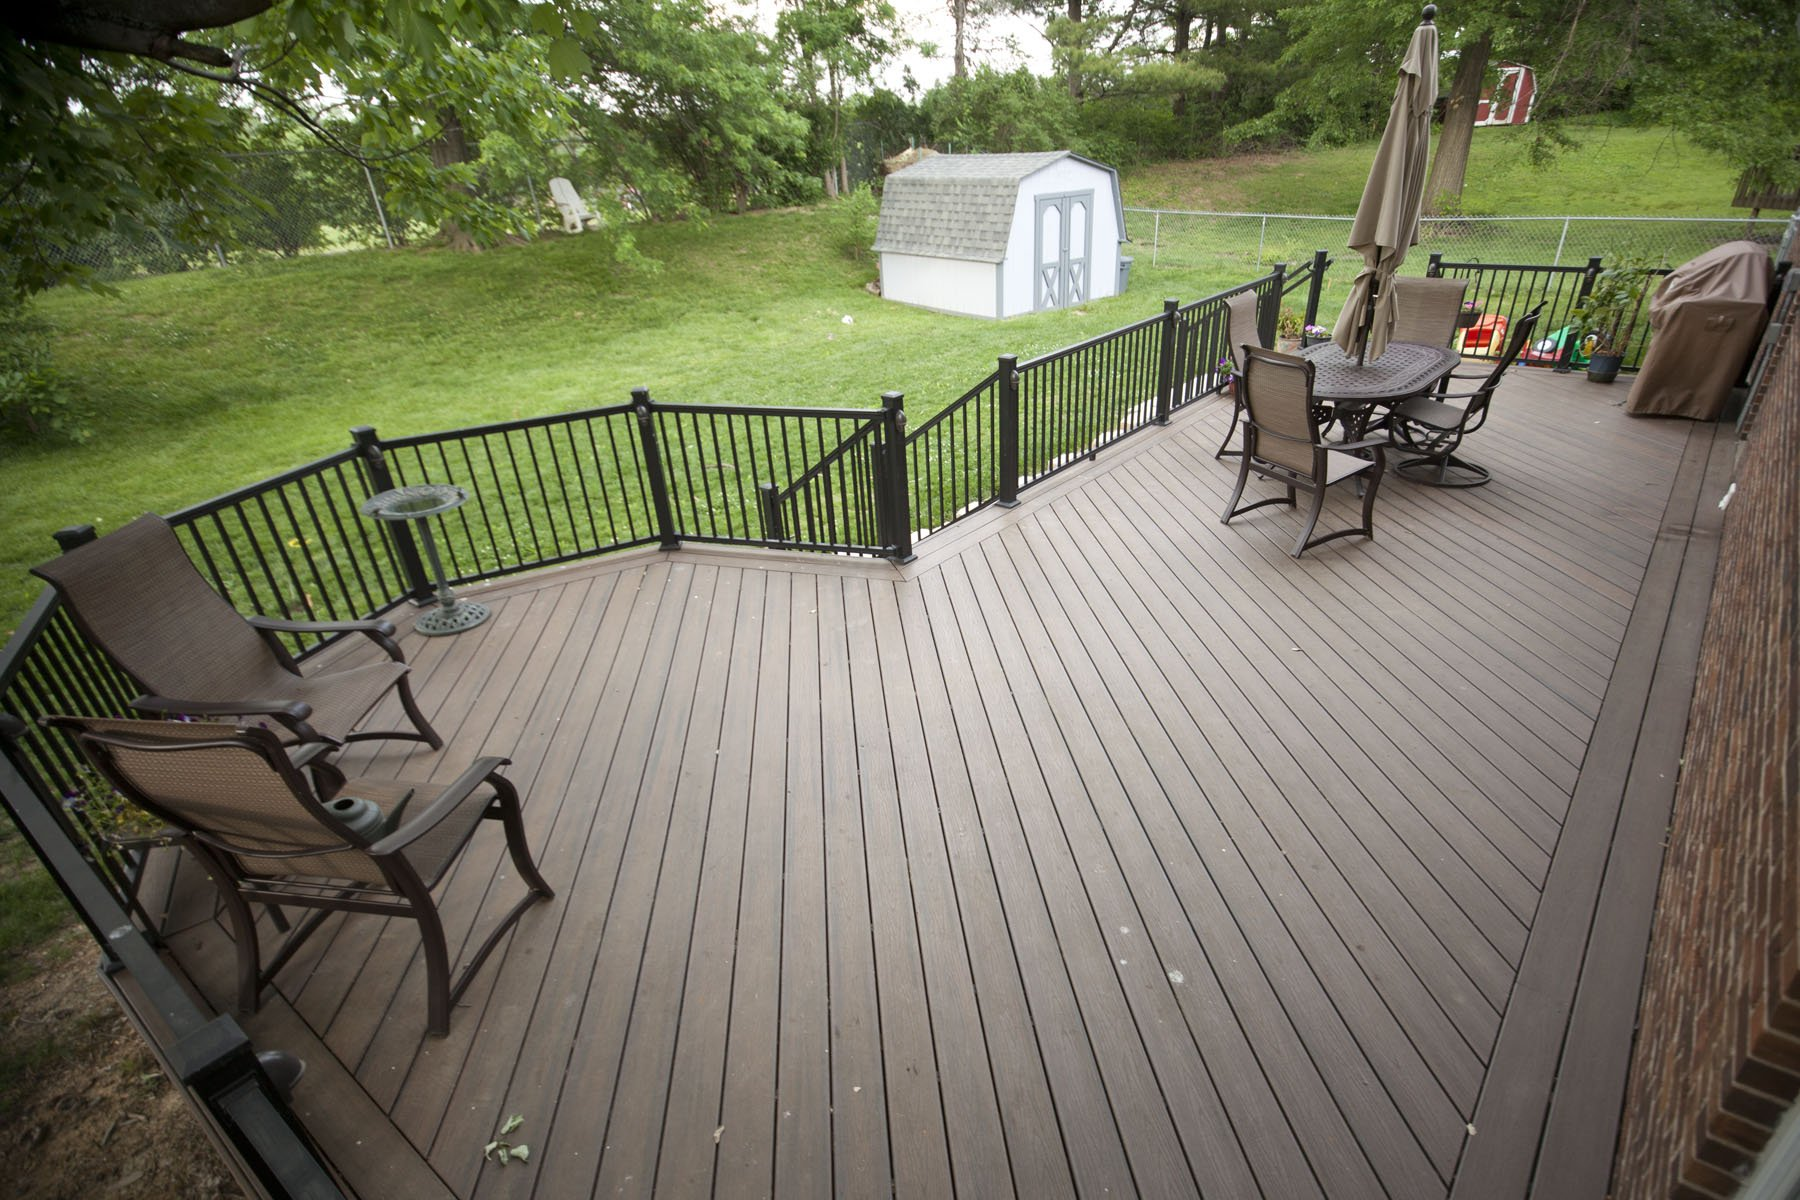 Deck Builders Cincinnati, Oh  Scudder General Contractors. Patio Table Glass Replacement San Diego. Porch Swing Bed Cushion. Patio Furniture Repair Diy. Table Patio Quebec. Patio Furniture York Maine. Wrought Iron Patio Furniture Leg Inserts. Porch Swing Diy Kit. Patio Sets Clearance Walmart